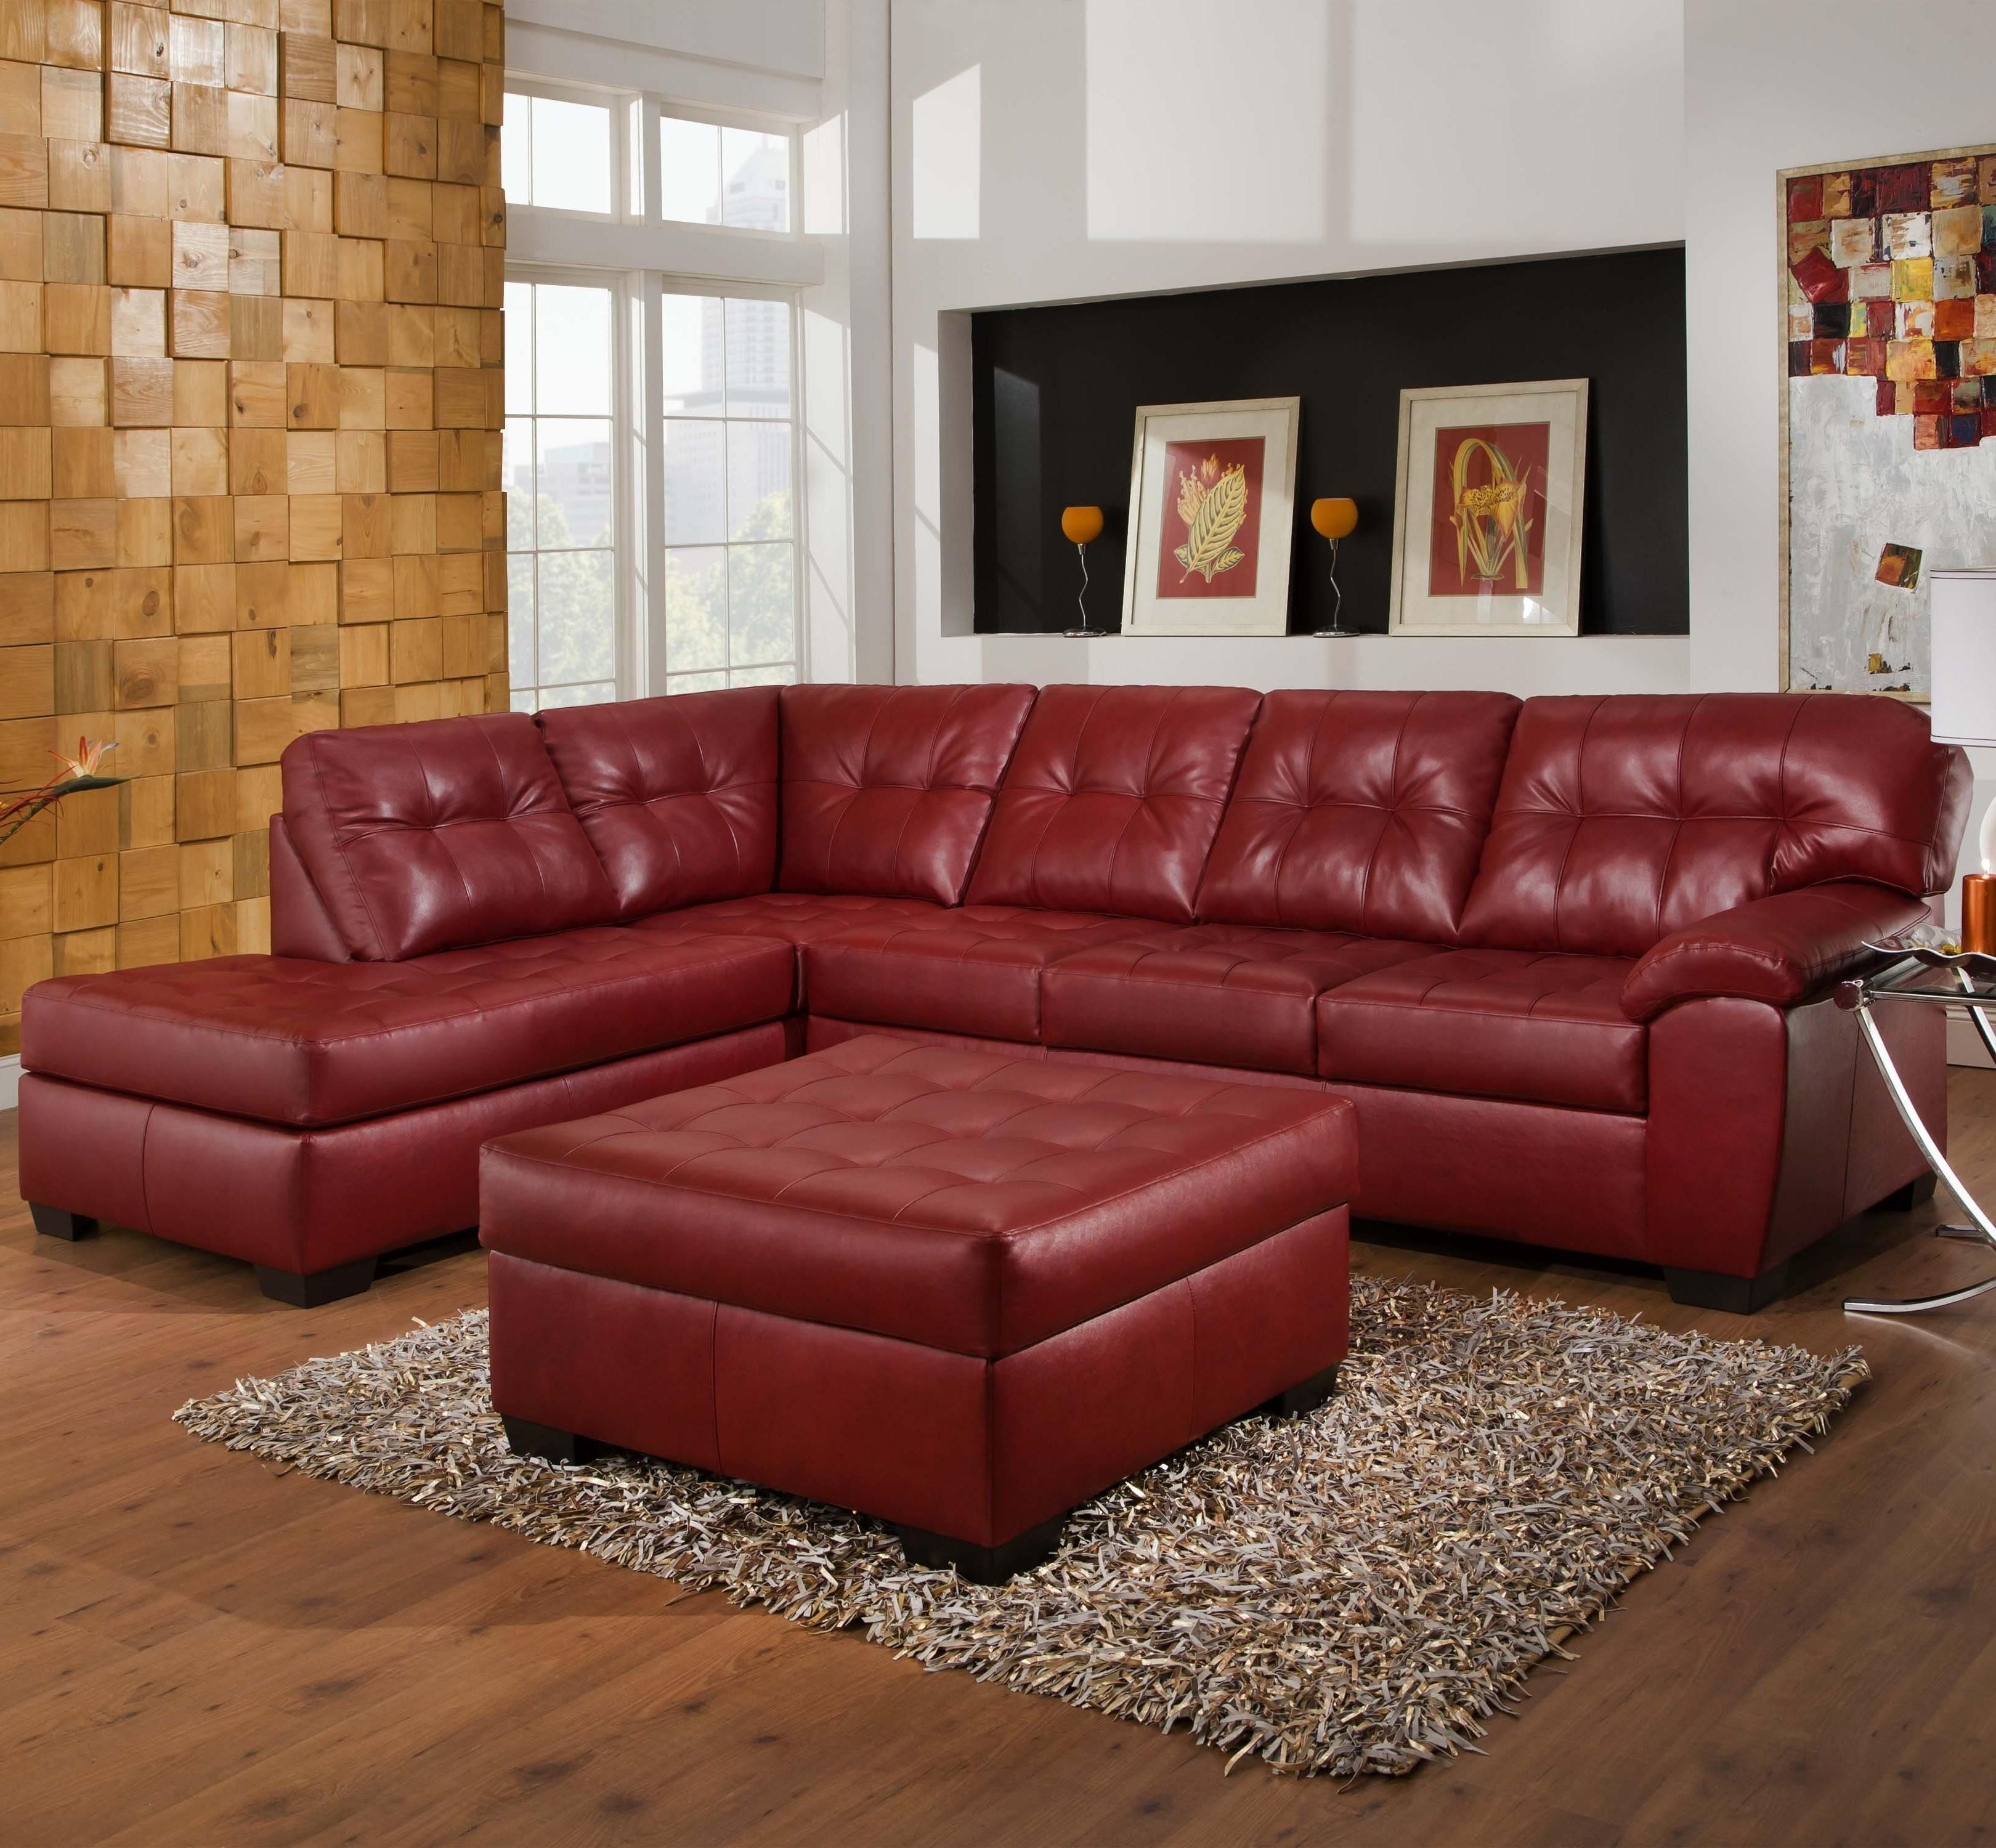 9569 2 Piece Sectional With Tufted Seats & Backsimmons With Regard To Most Popular Ivan Smith Sectional Sofas (View 5 of 15)